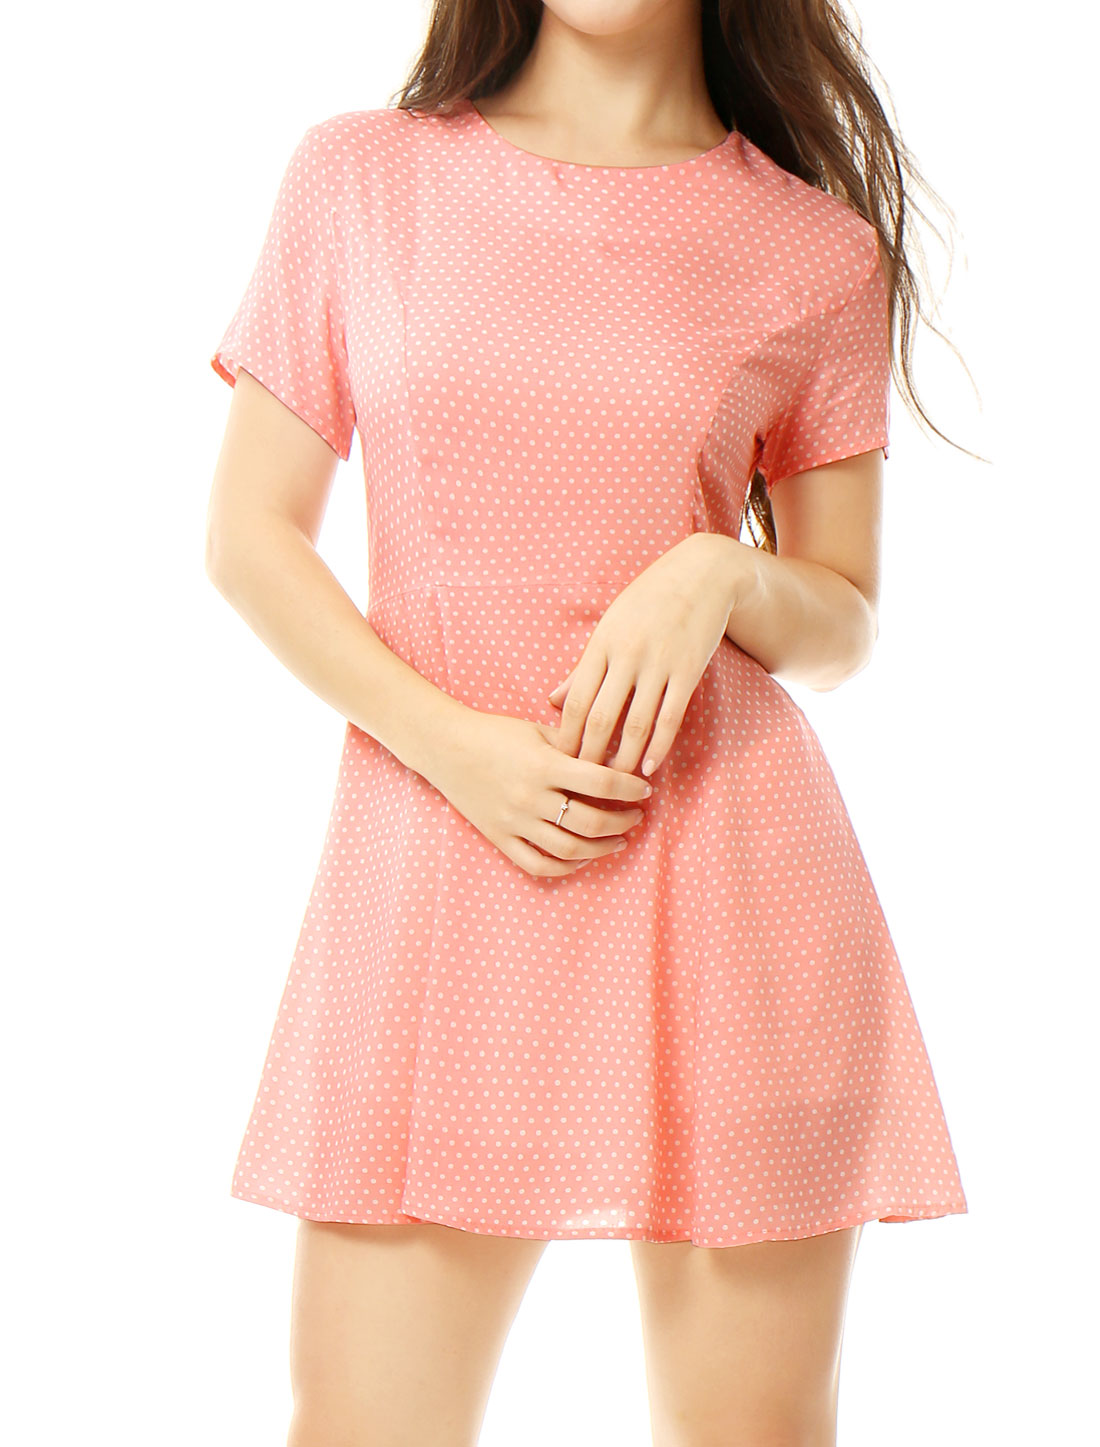 Women Polka Dots Lace Up Back Short Sleeves A Line Dress Pink XS